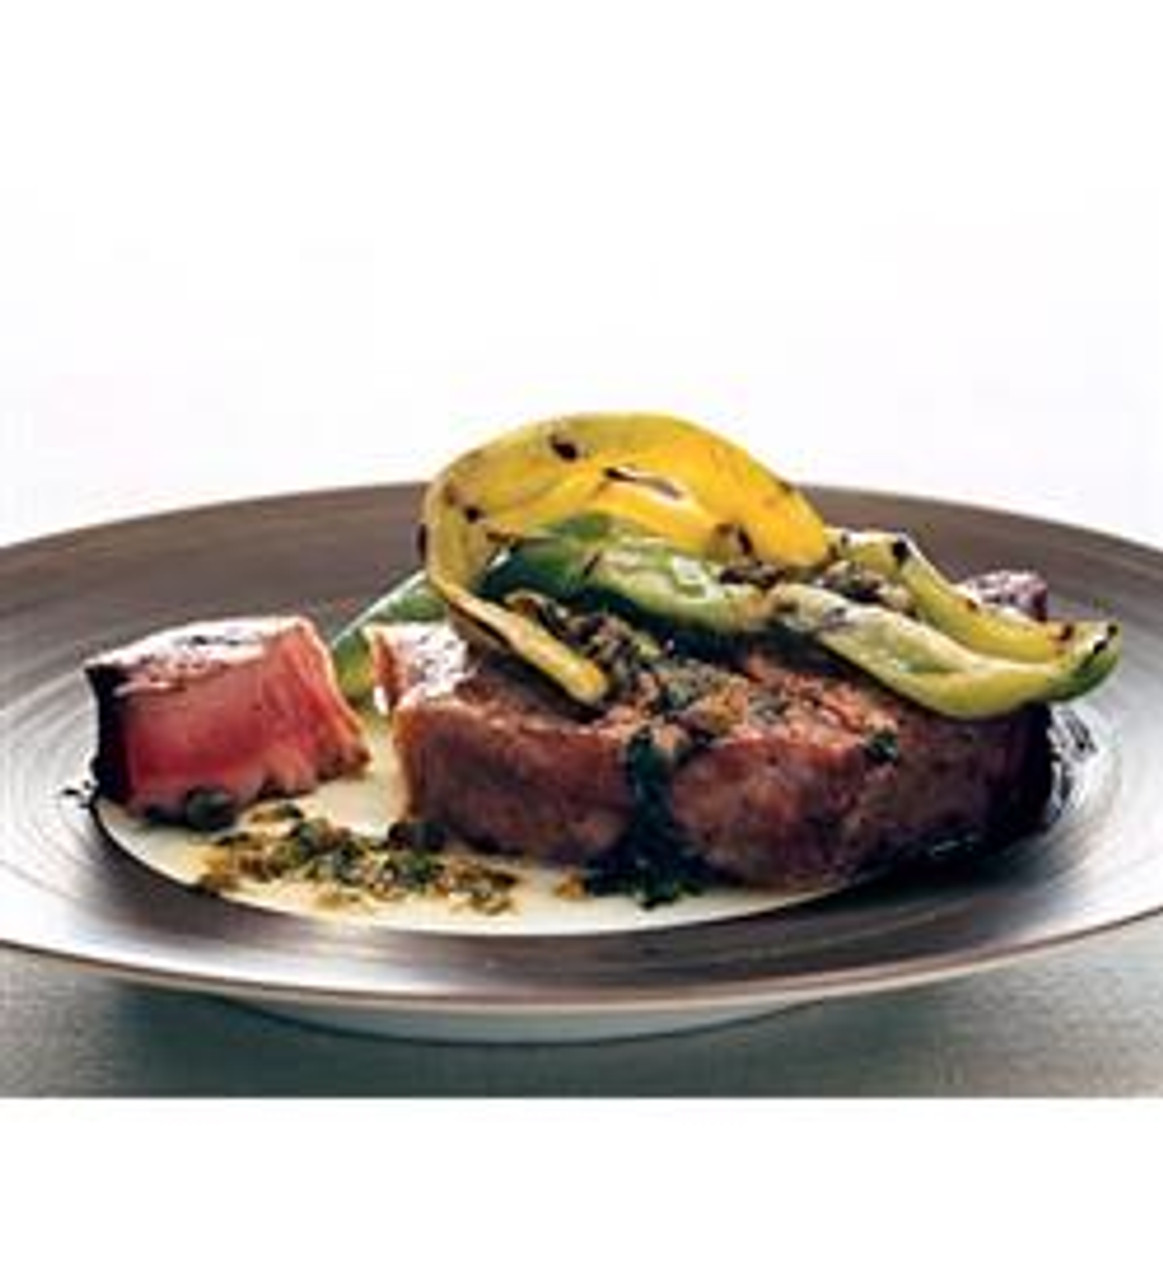 Grilled Tuna with Peppers and a Caper Vinaigrette